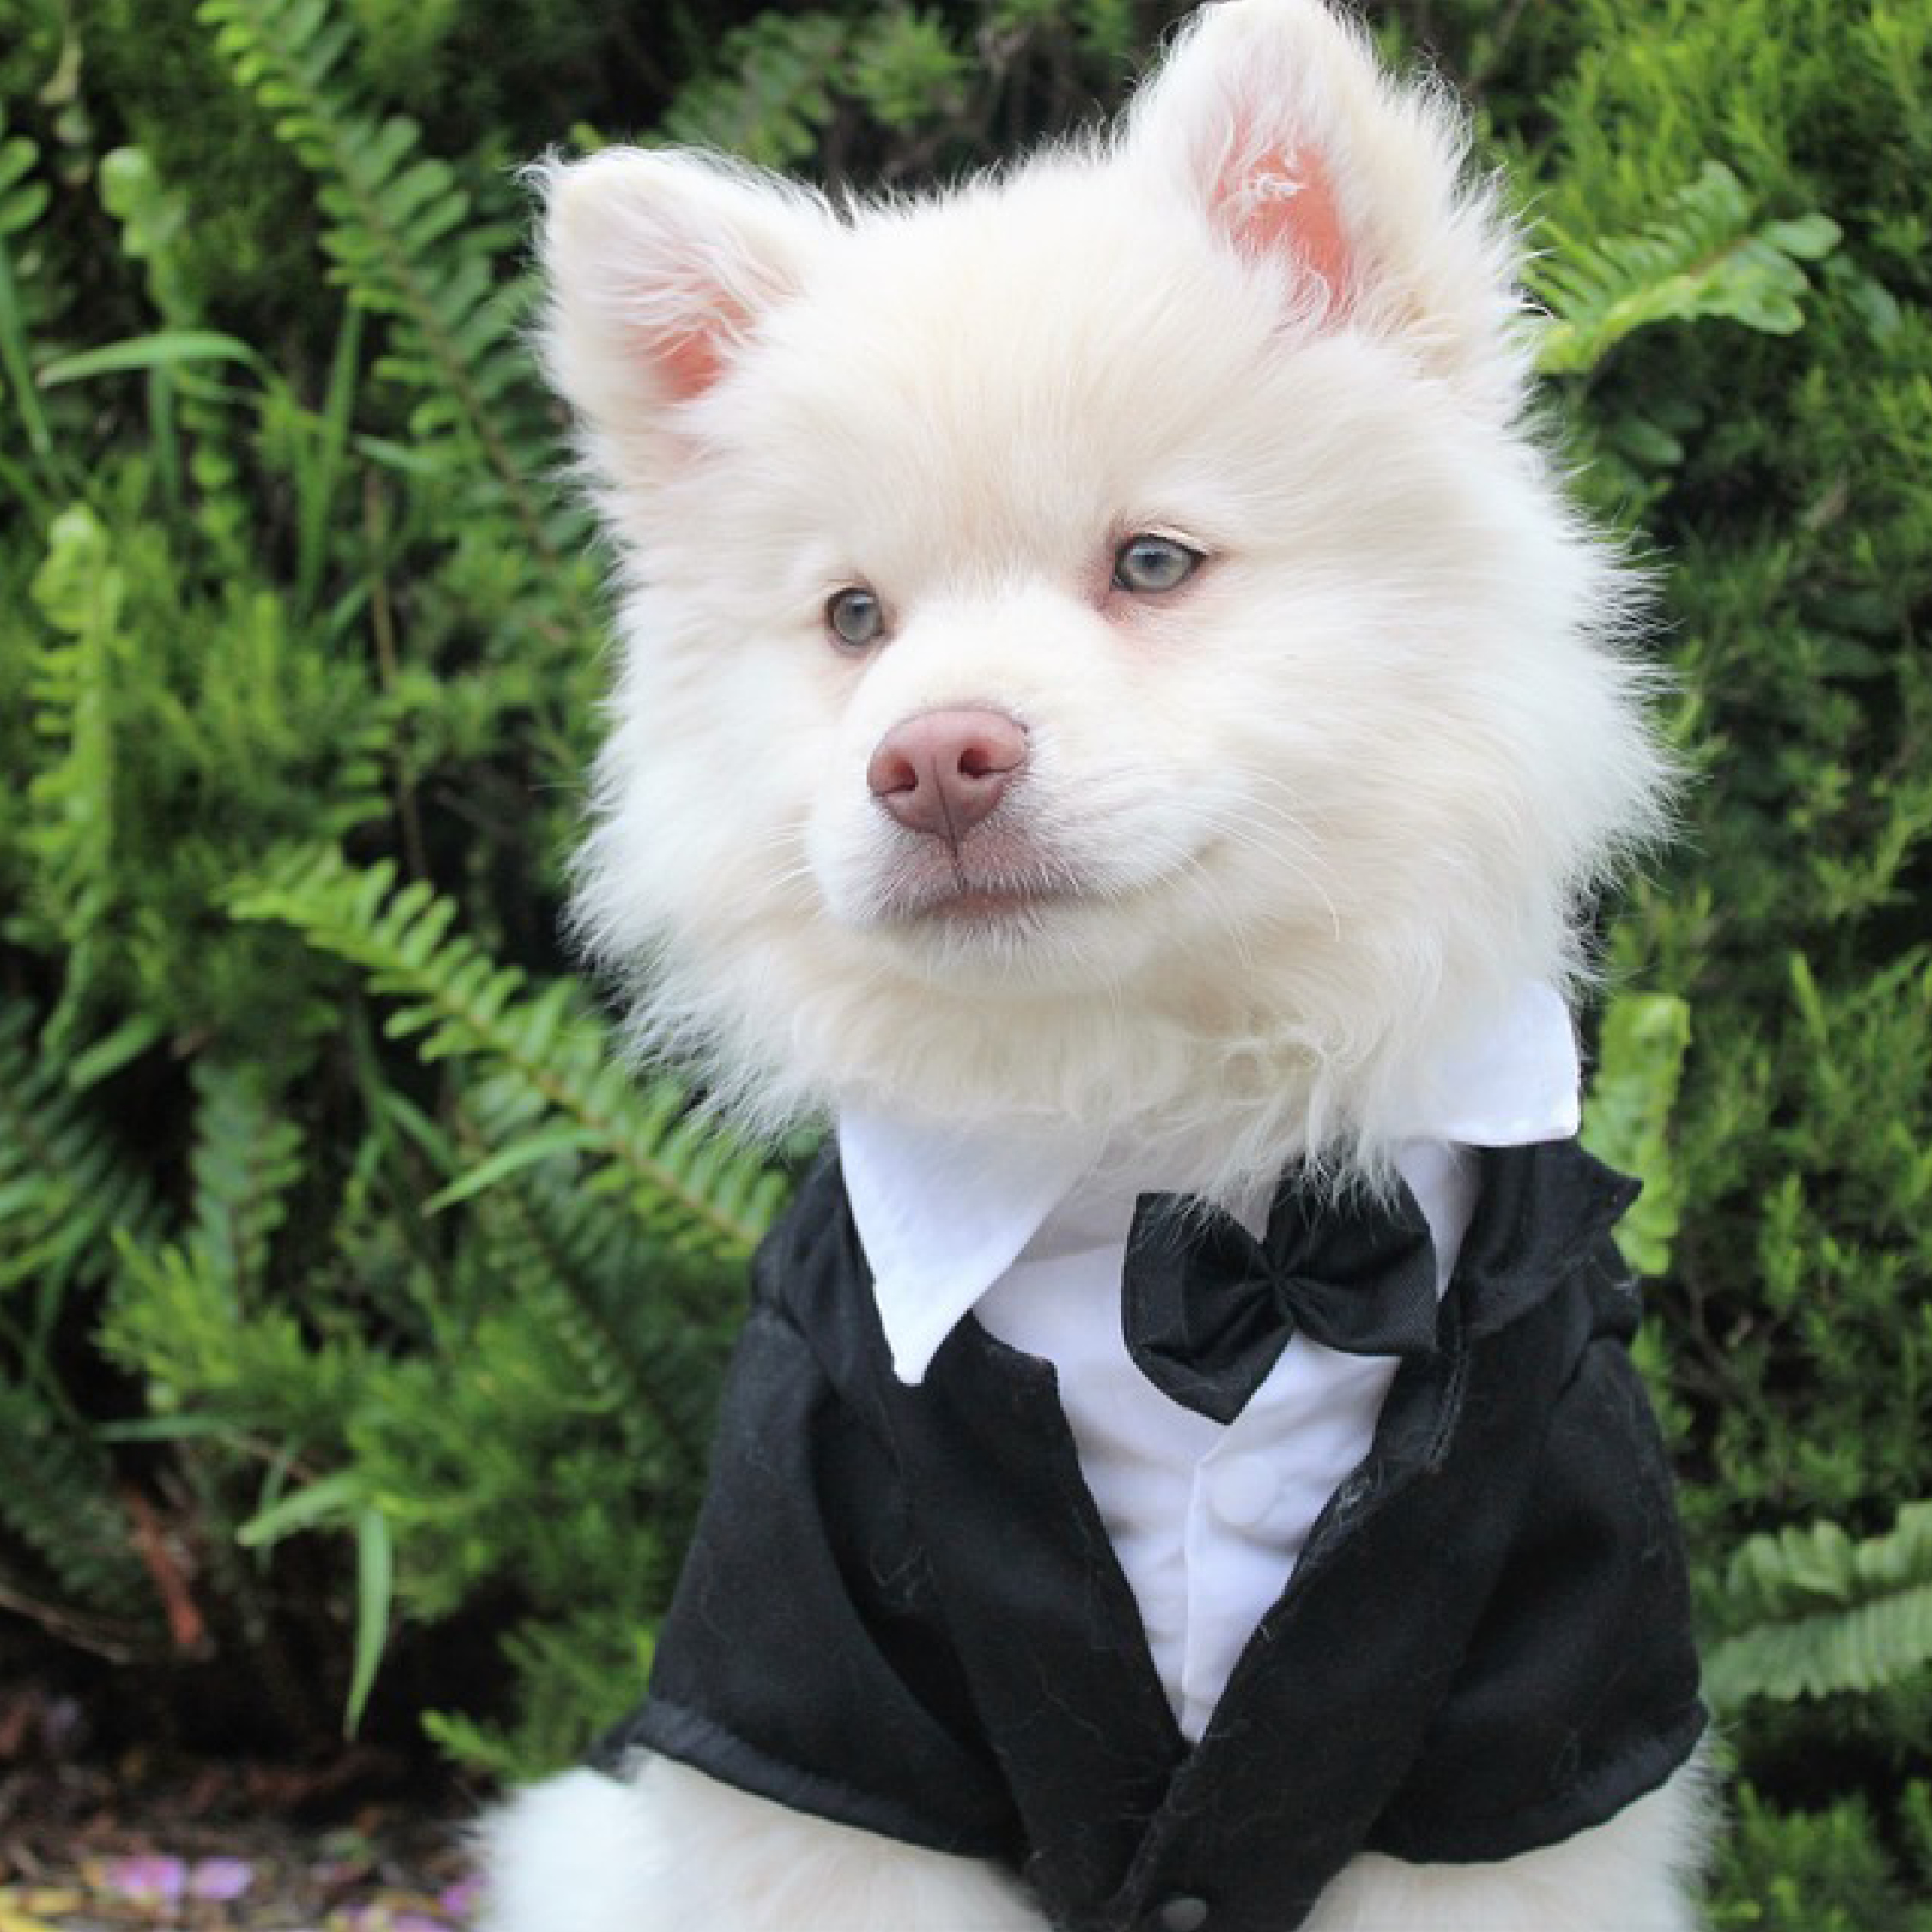 Animals at weddings, dogs at weddings, best dog, dog ring bearer, dog page boy